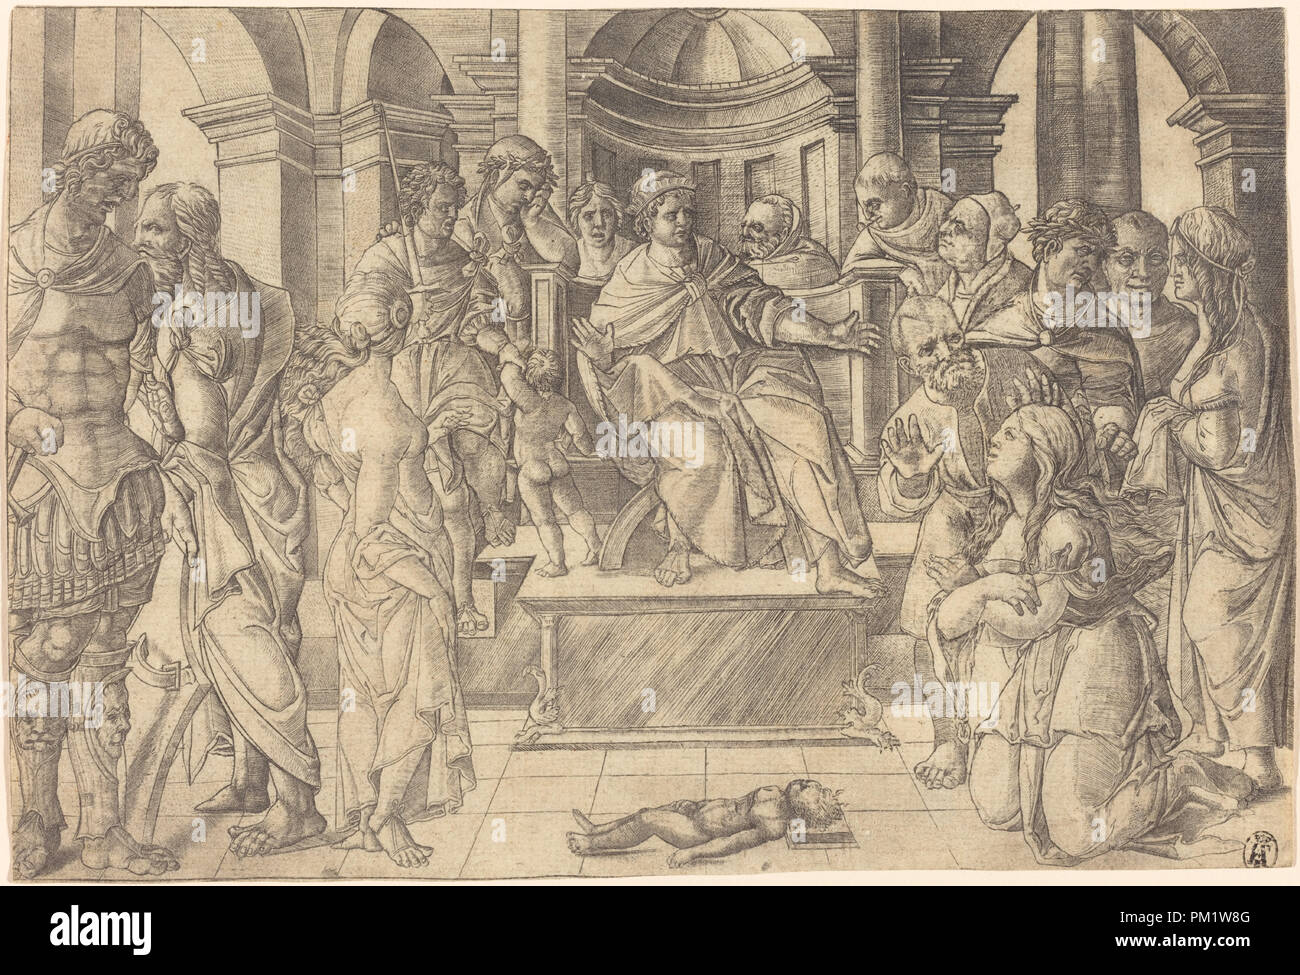 c01e26e2e288 The Judgment of Solomon. Dated  probably c. 1516. Medium  engraving.  Museum  National Gallery of Art